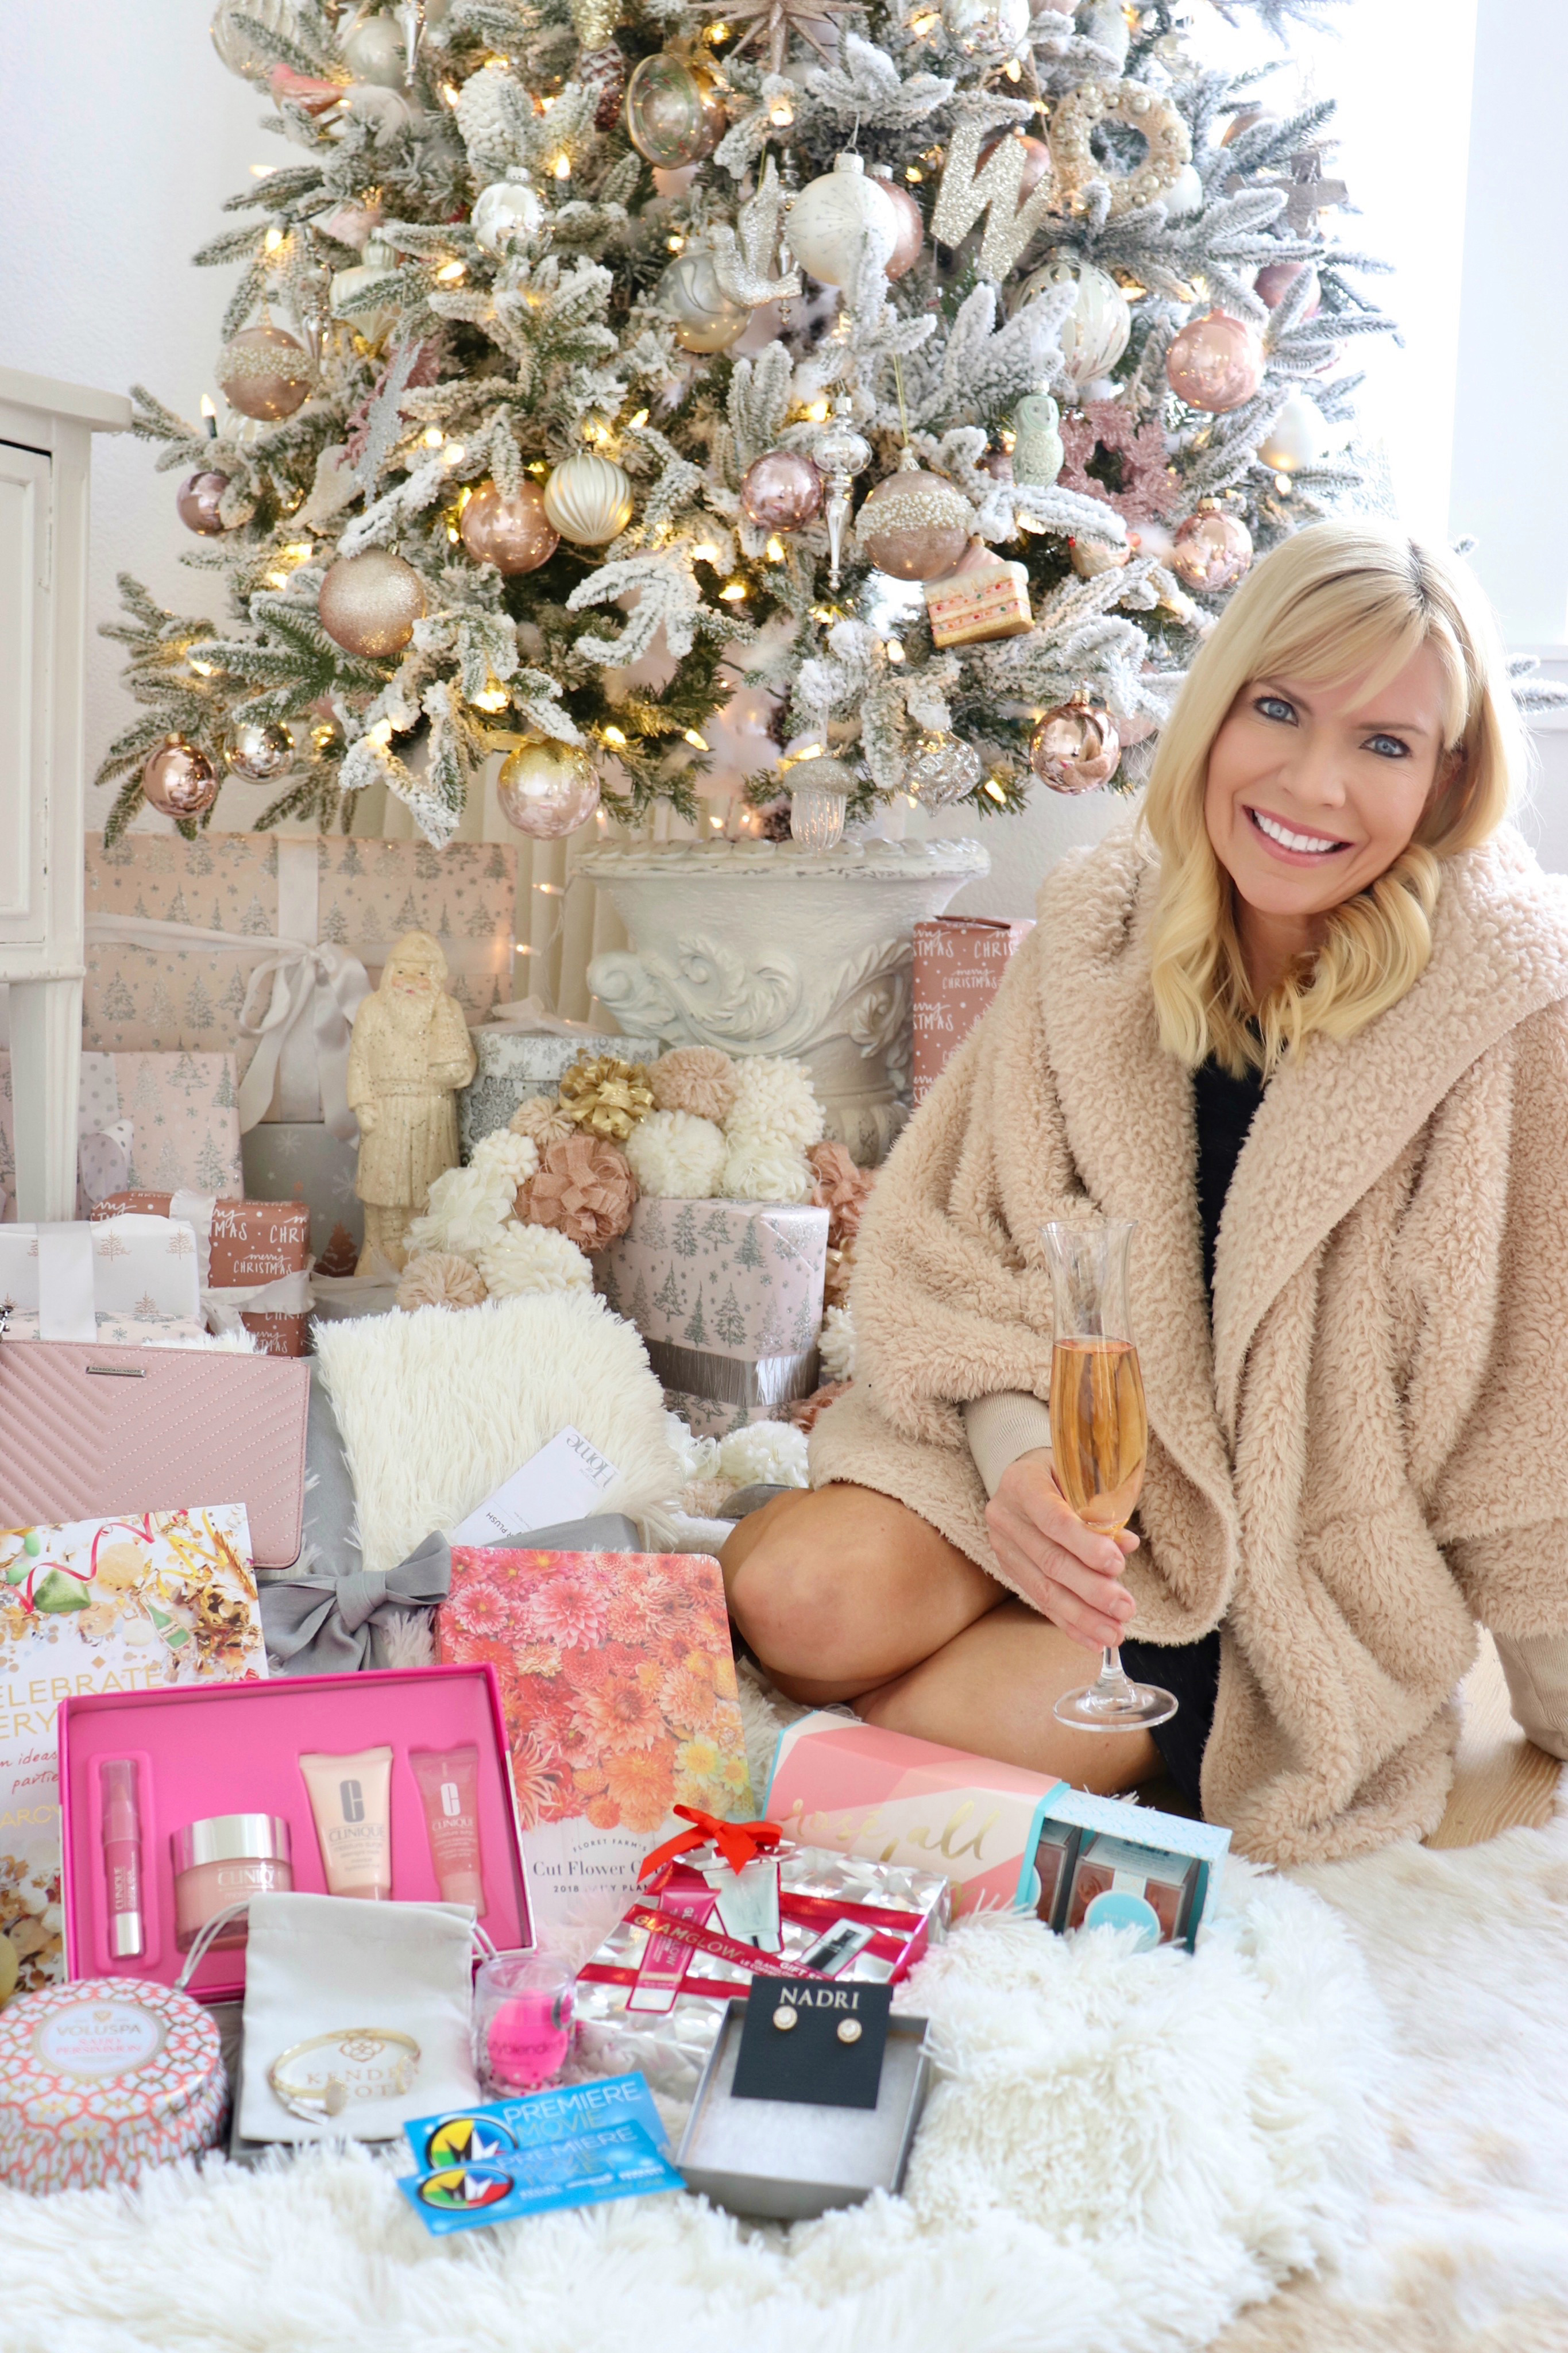 Kristy's Christmas Giveaway - Kristy Wicks